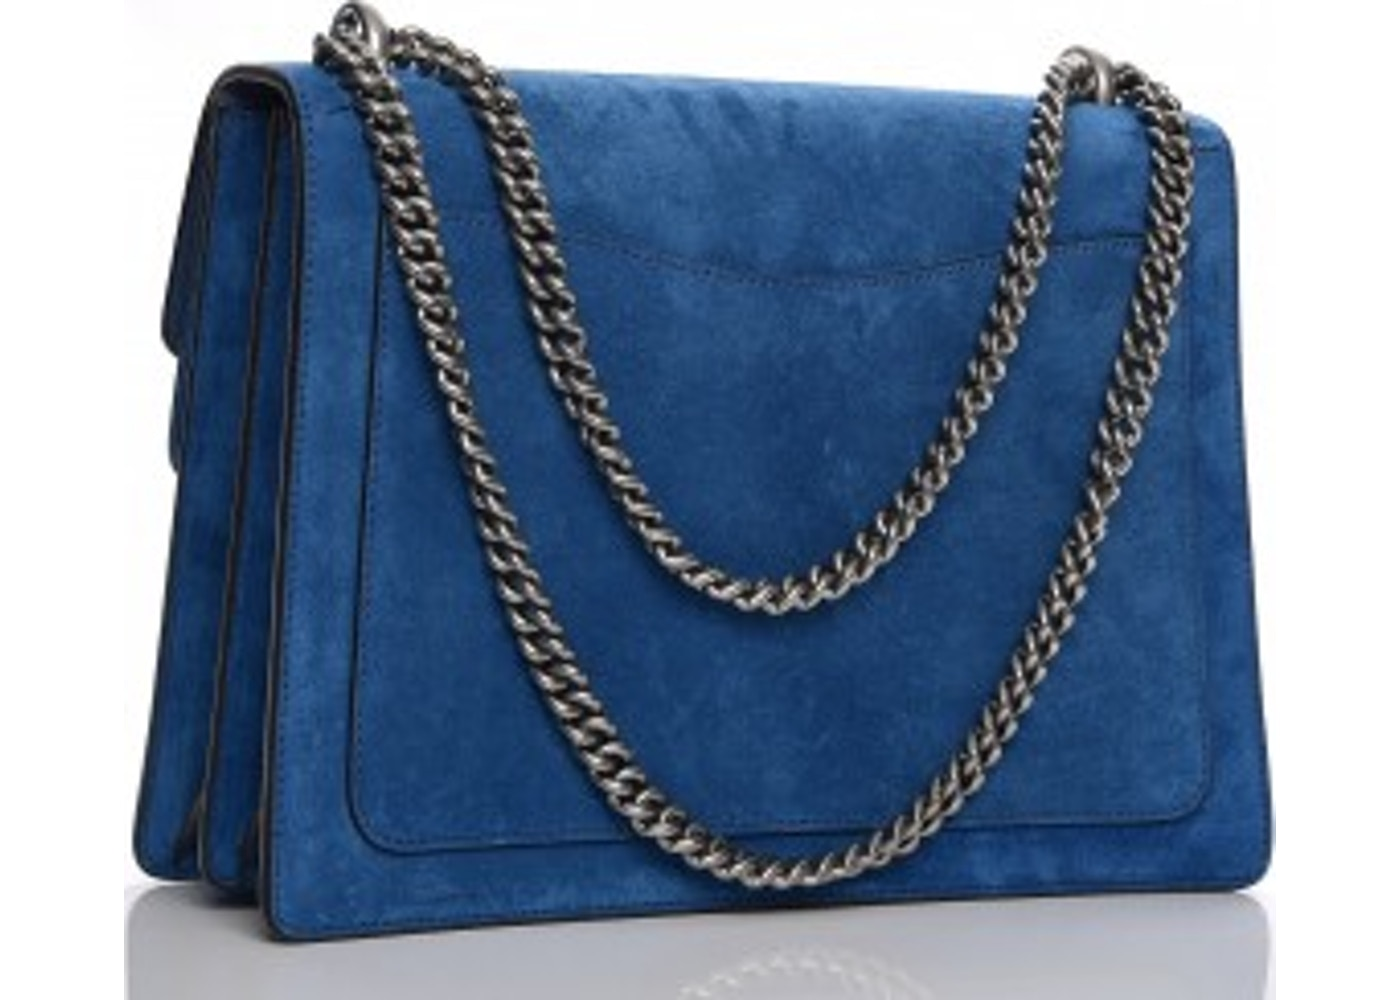 c2b9e2050d4c Gucci Dionysus Shoulder Suede Blue Medium